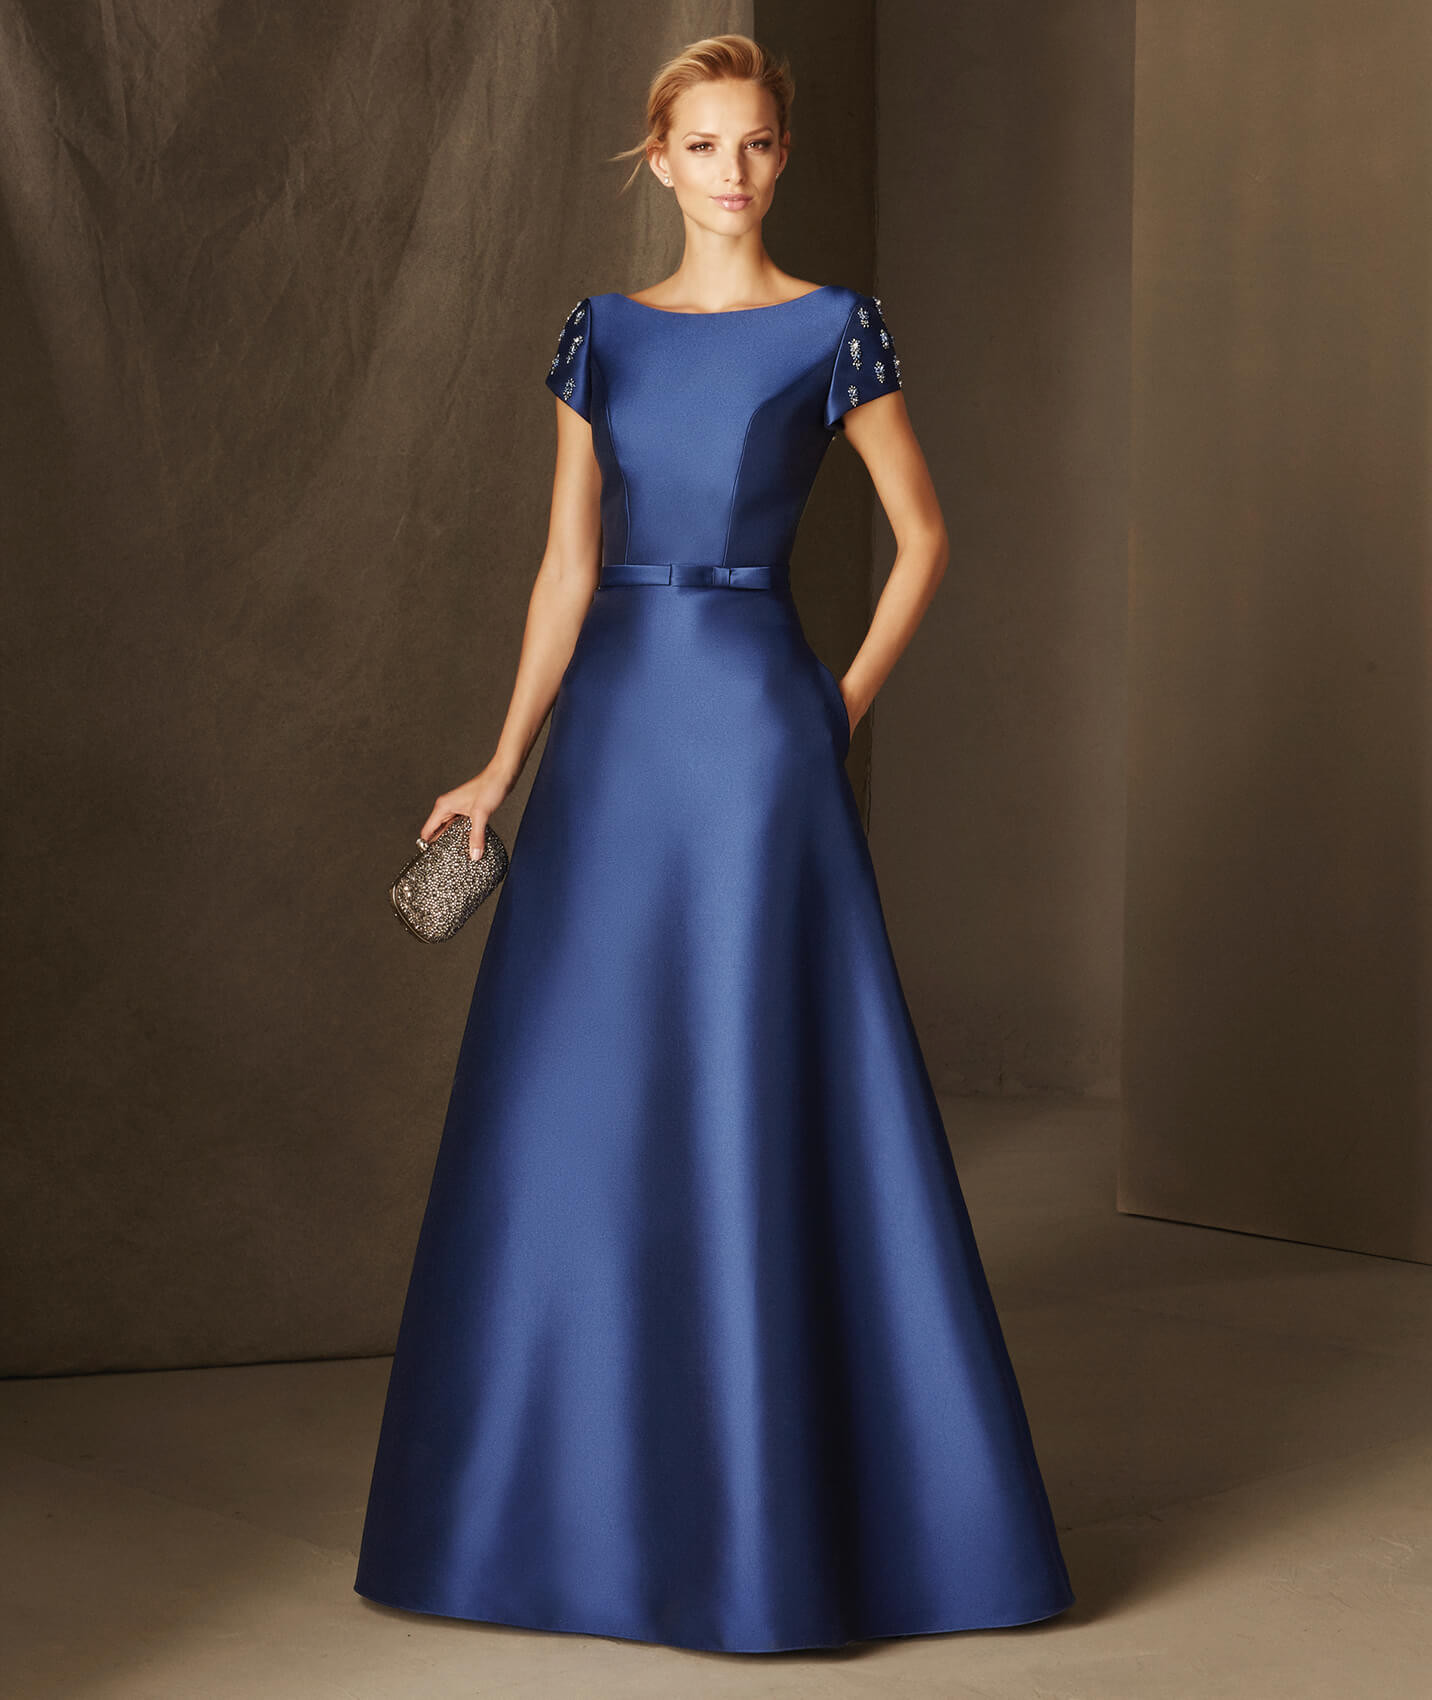 Bria Flared Mikado Maid Of Honor Dress With A Bateau Neckline And Short Sleeves